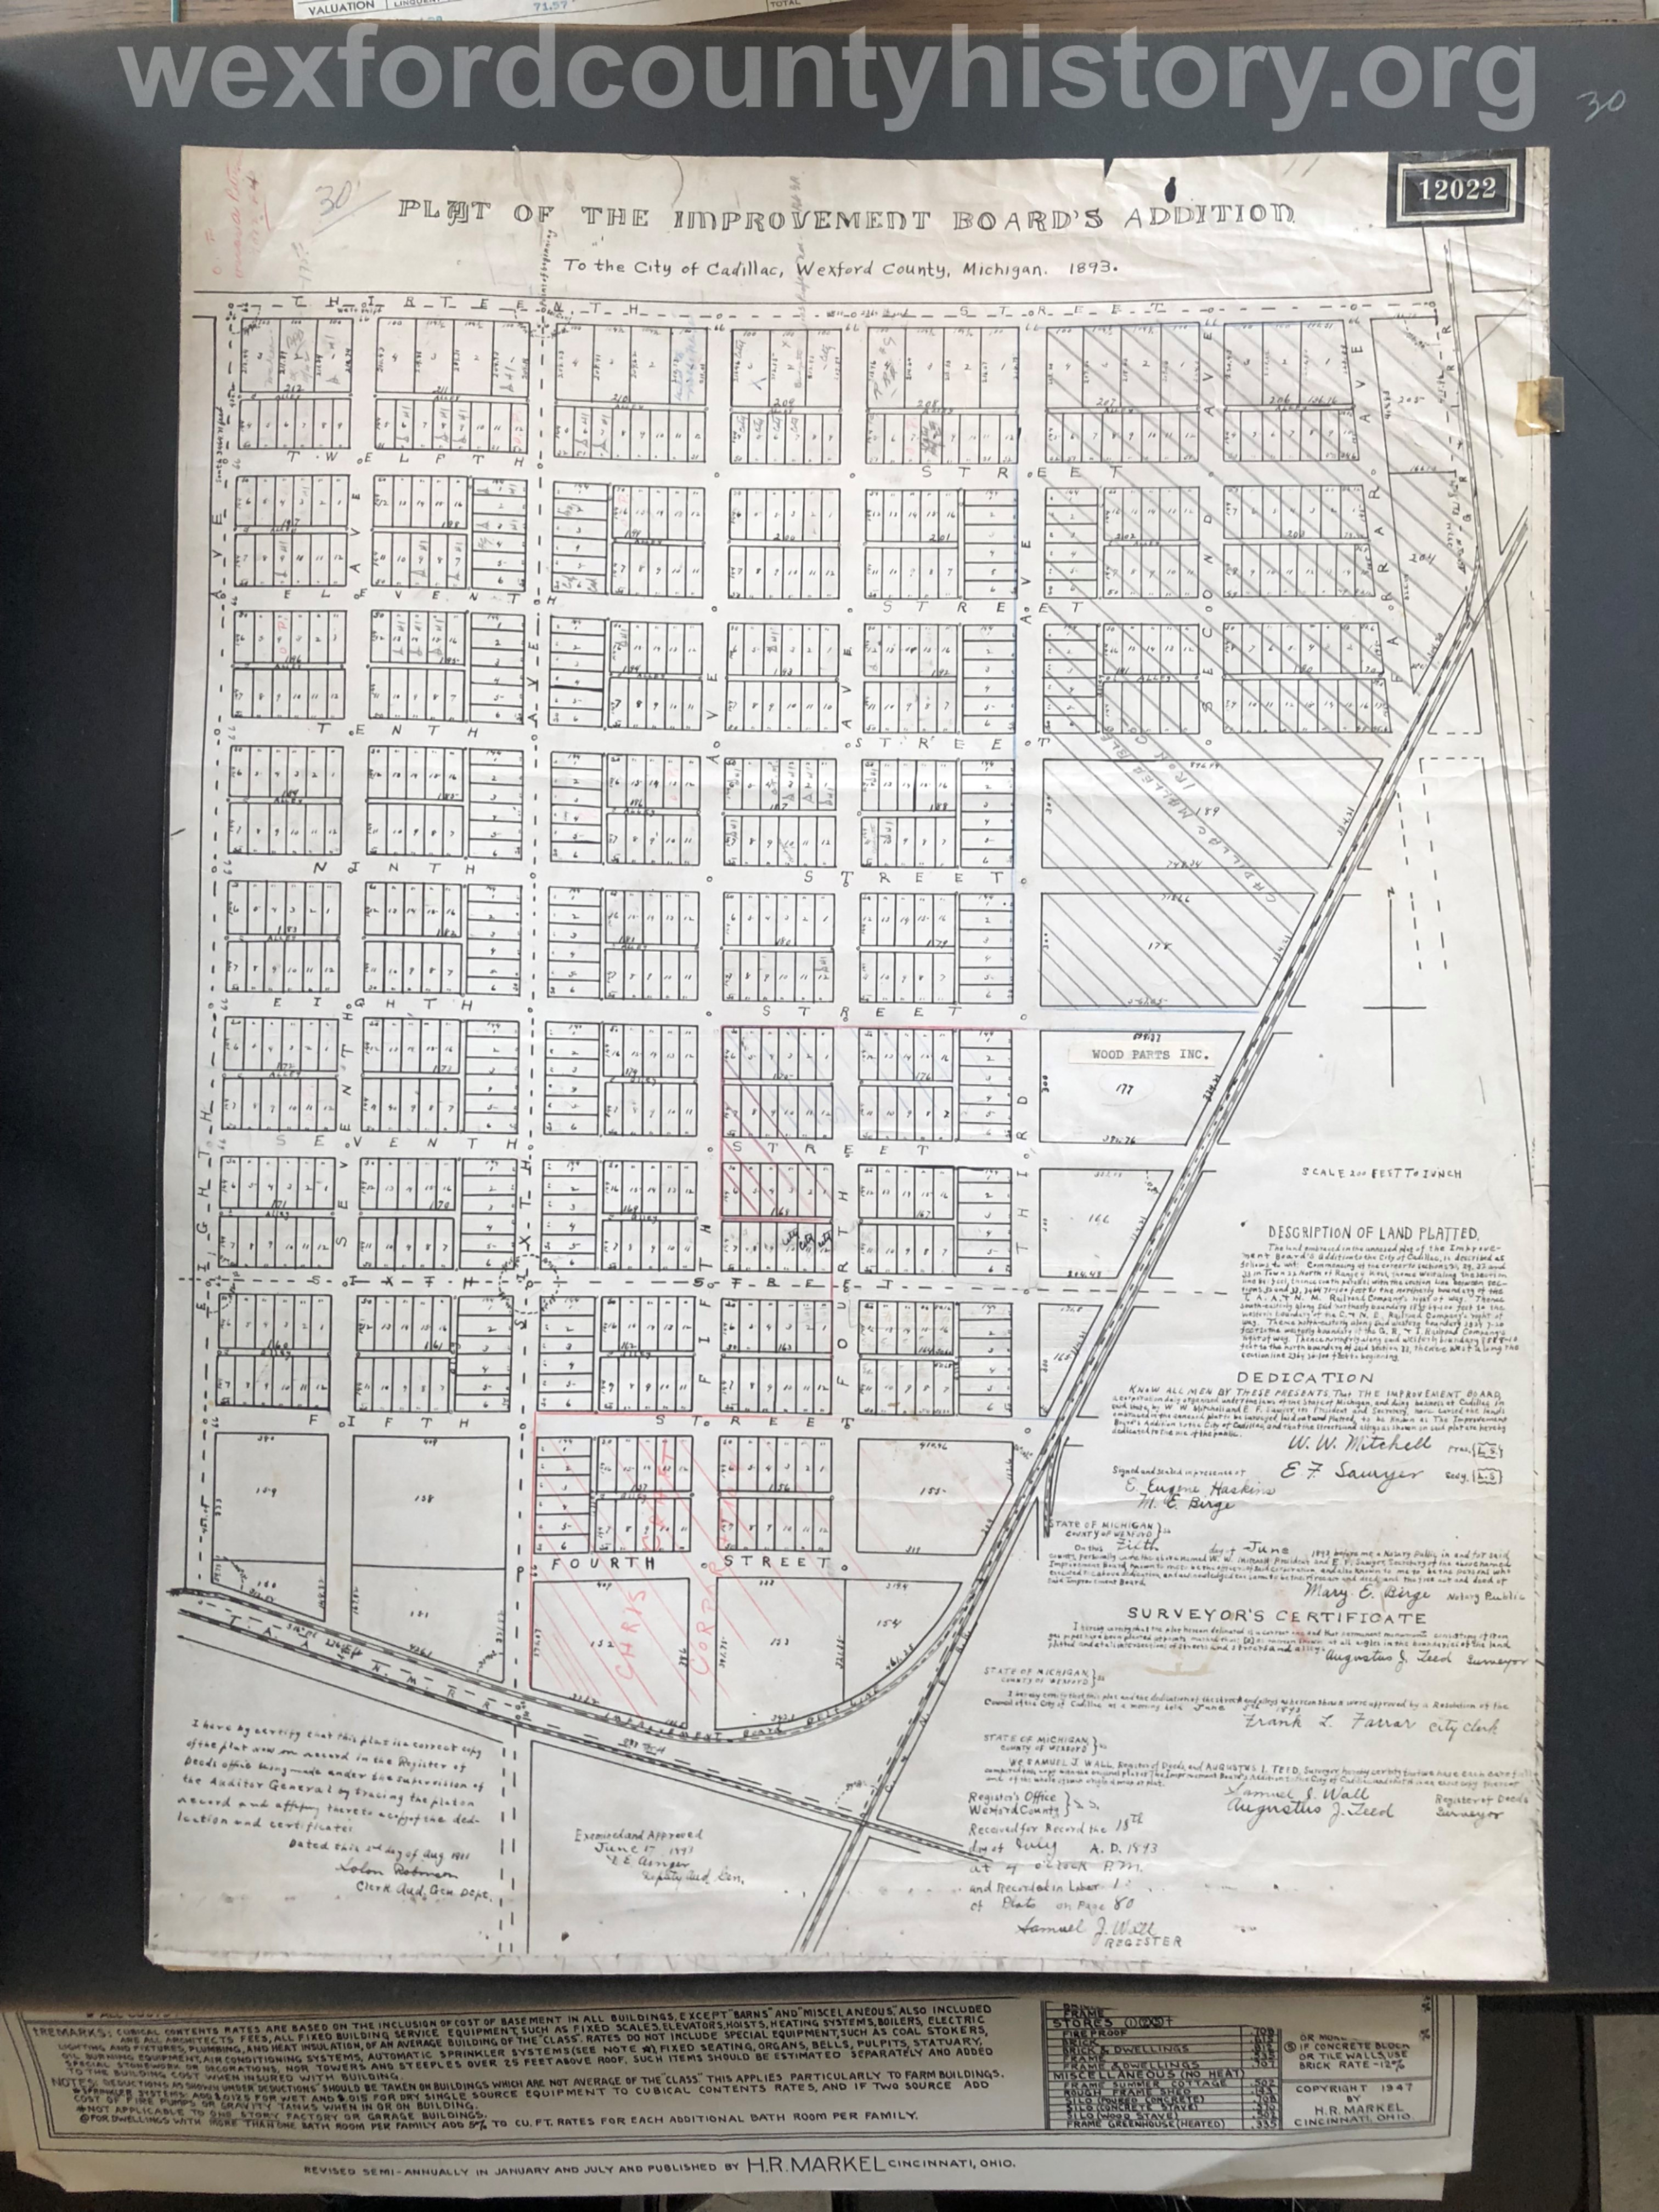 1893 - Improvement Board's Addition To The City Of Cadillac